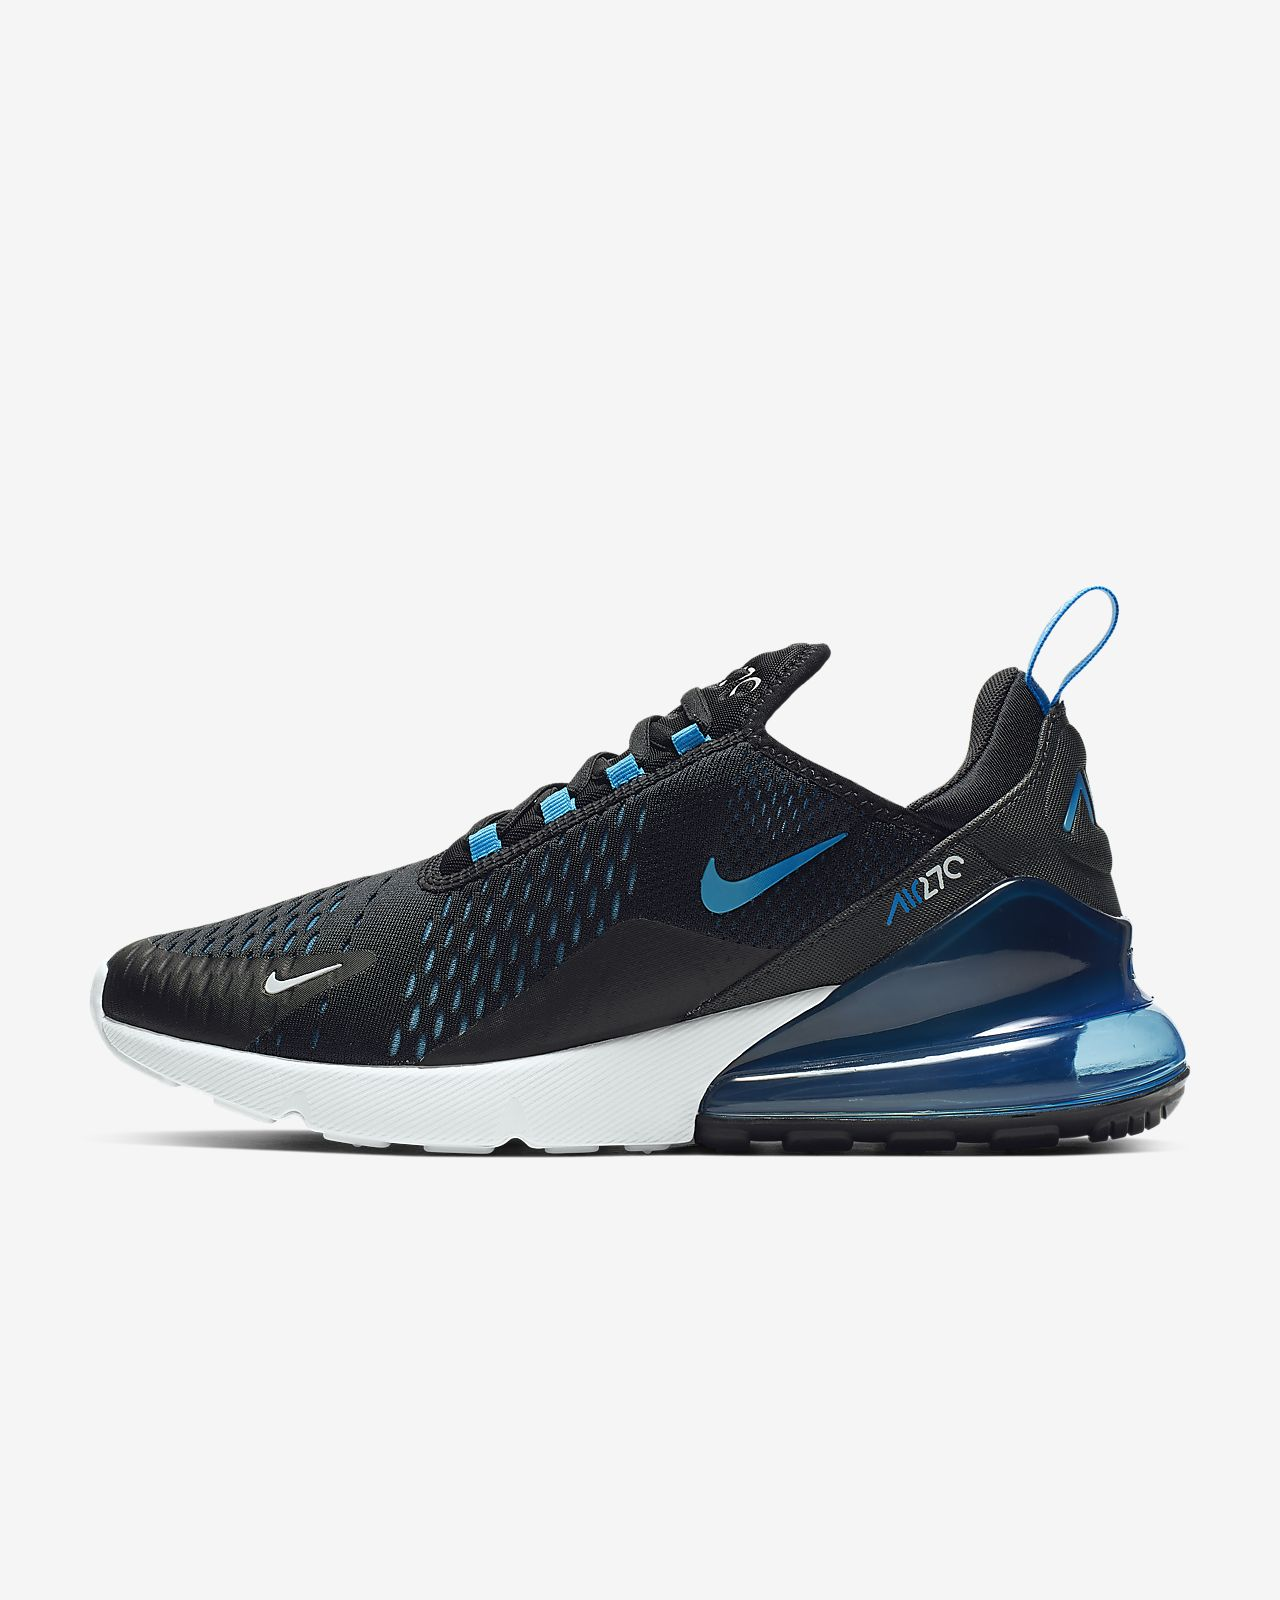 80b590049d28 Nike Air Max 270 Men s Shoe. Nike.com GB